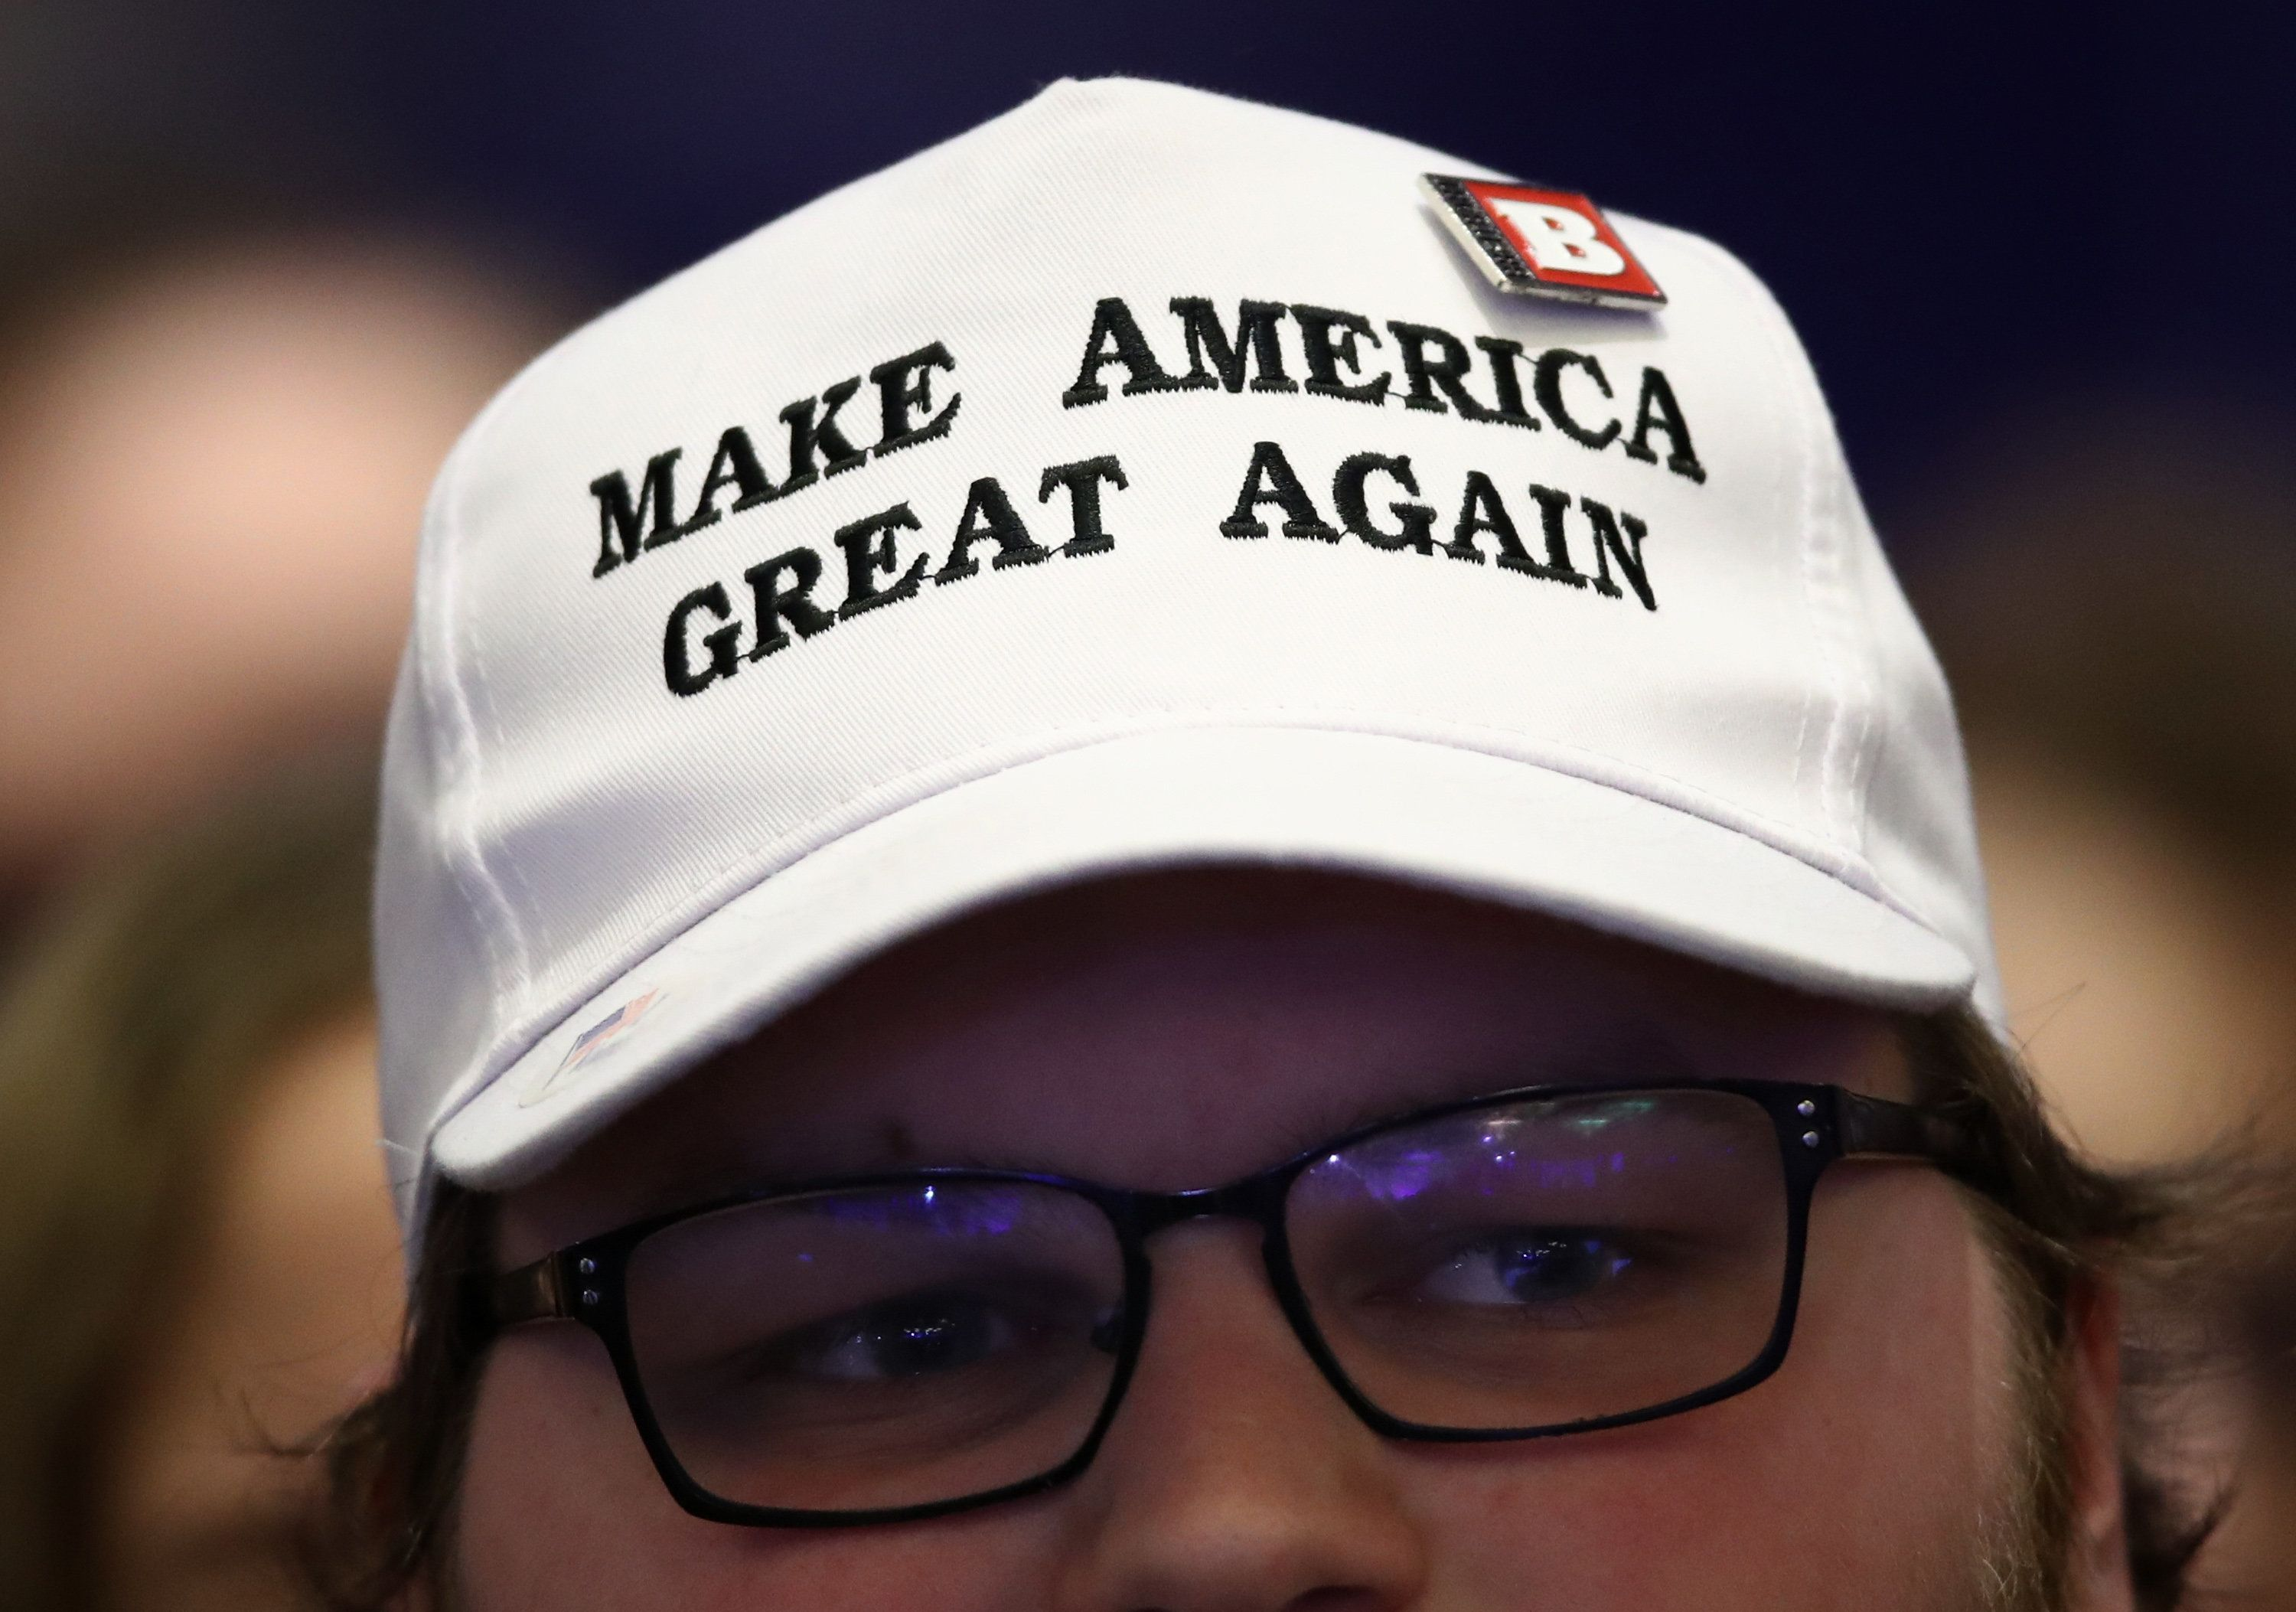 NATIONAL HARBOR, MD - FEBRUARY 24:  A supporter listens as U.S. President Donald Trump speaks during the Conservative Political Action Conference at the Gaylord National Resort and Convention Center February 24, 2017 in National Harbor, Maryland. Hosted by the American Conservative Union, CPAC is an annual gathering of right wing politicians, commentators and their supporters.  (Photo by Win McNamee/Getty Images)